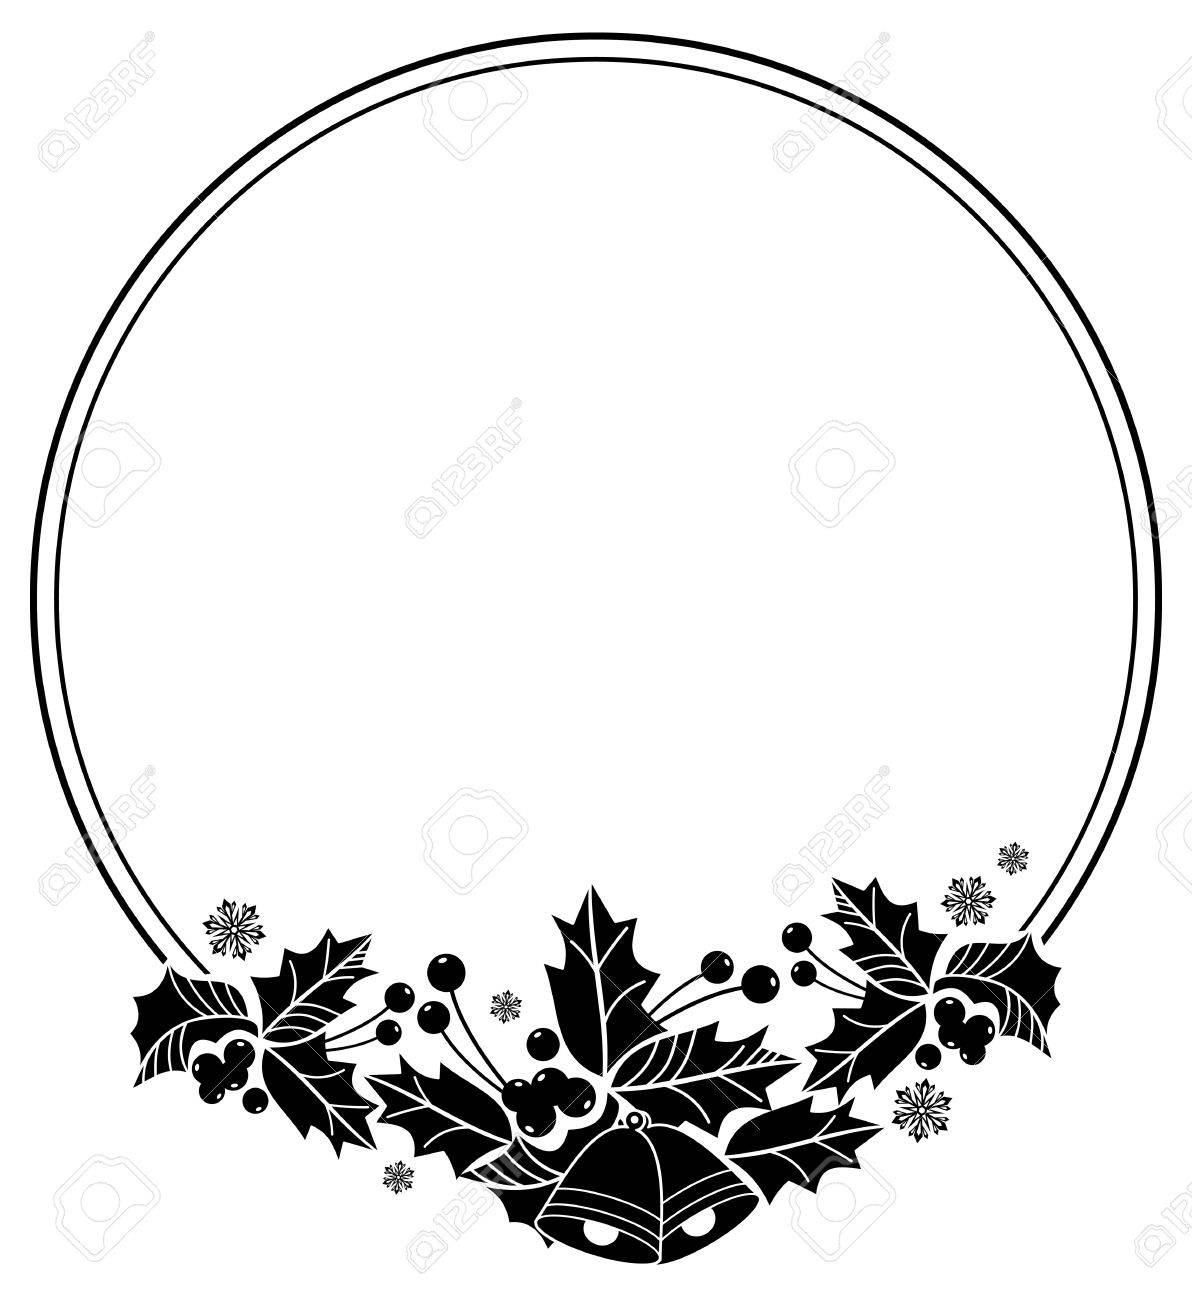 1192x1300 Silhouette Round Frame With Christmas Bell, Holly Berry And Pine